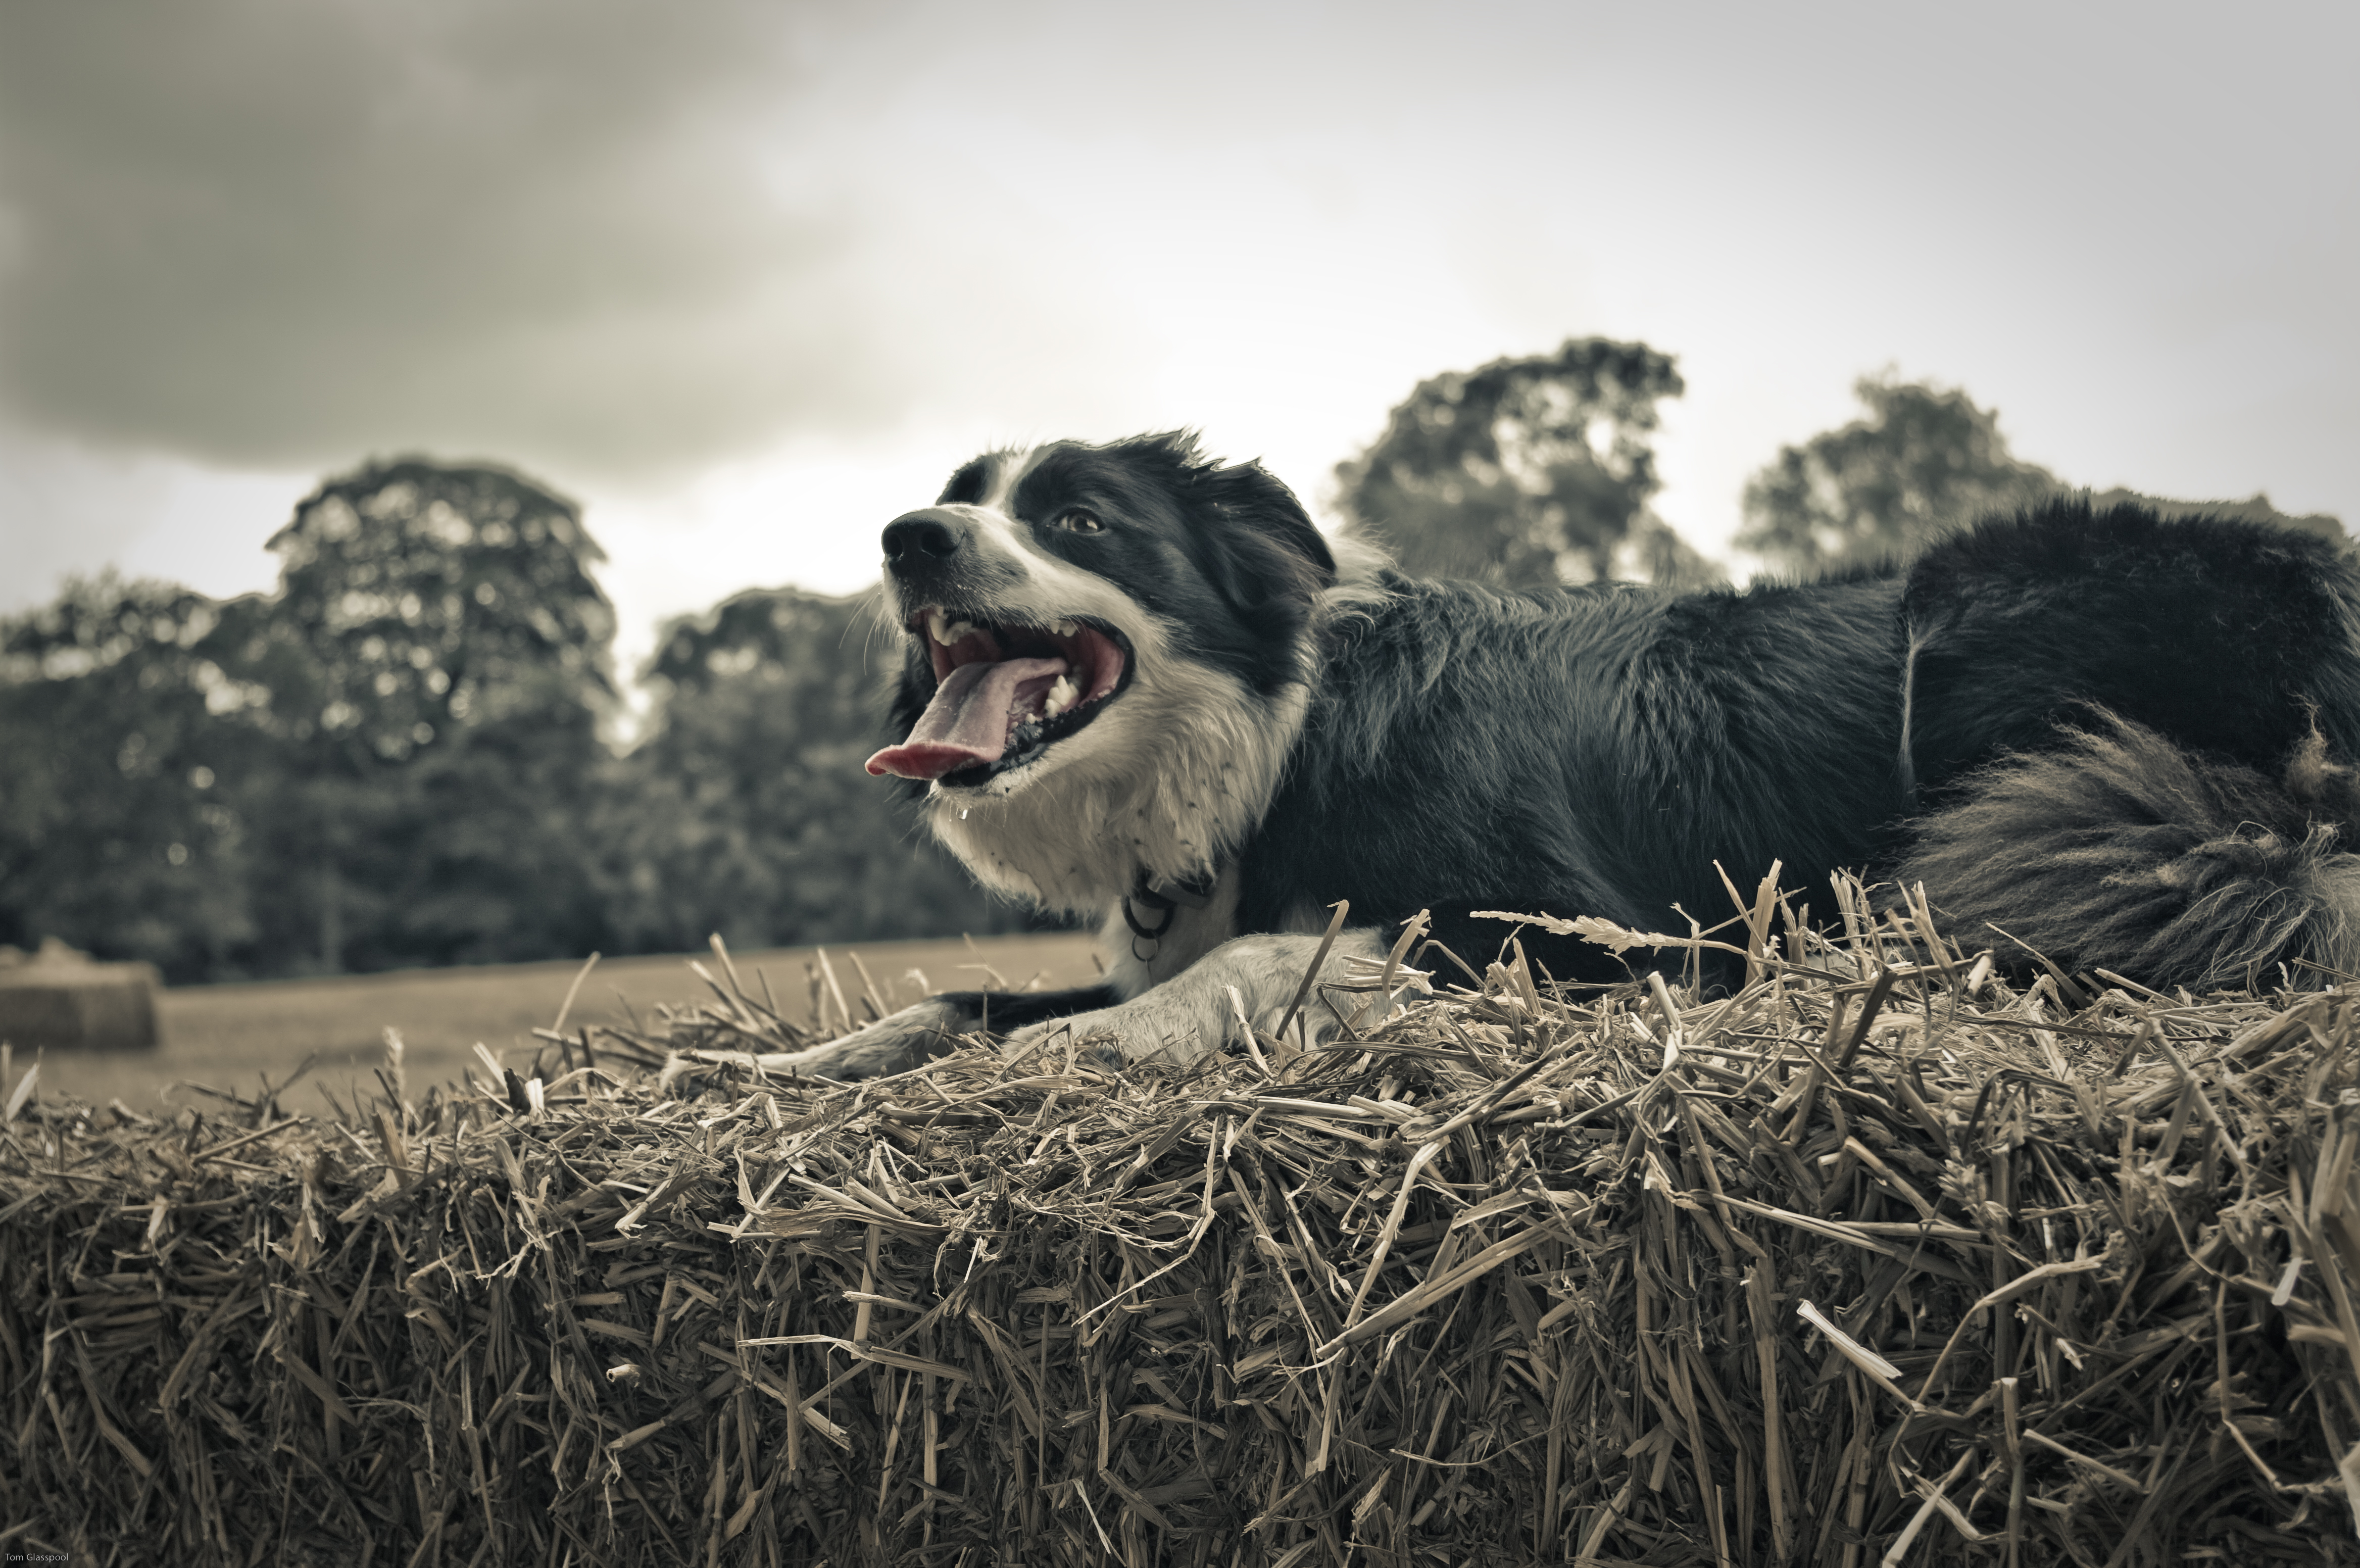 border collie, dog, sheepdog, field, hampshire, harvest, england, photography